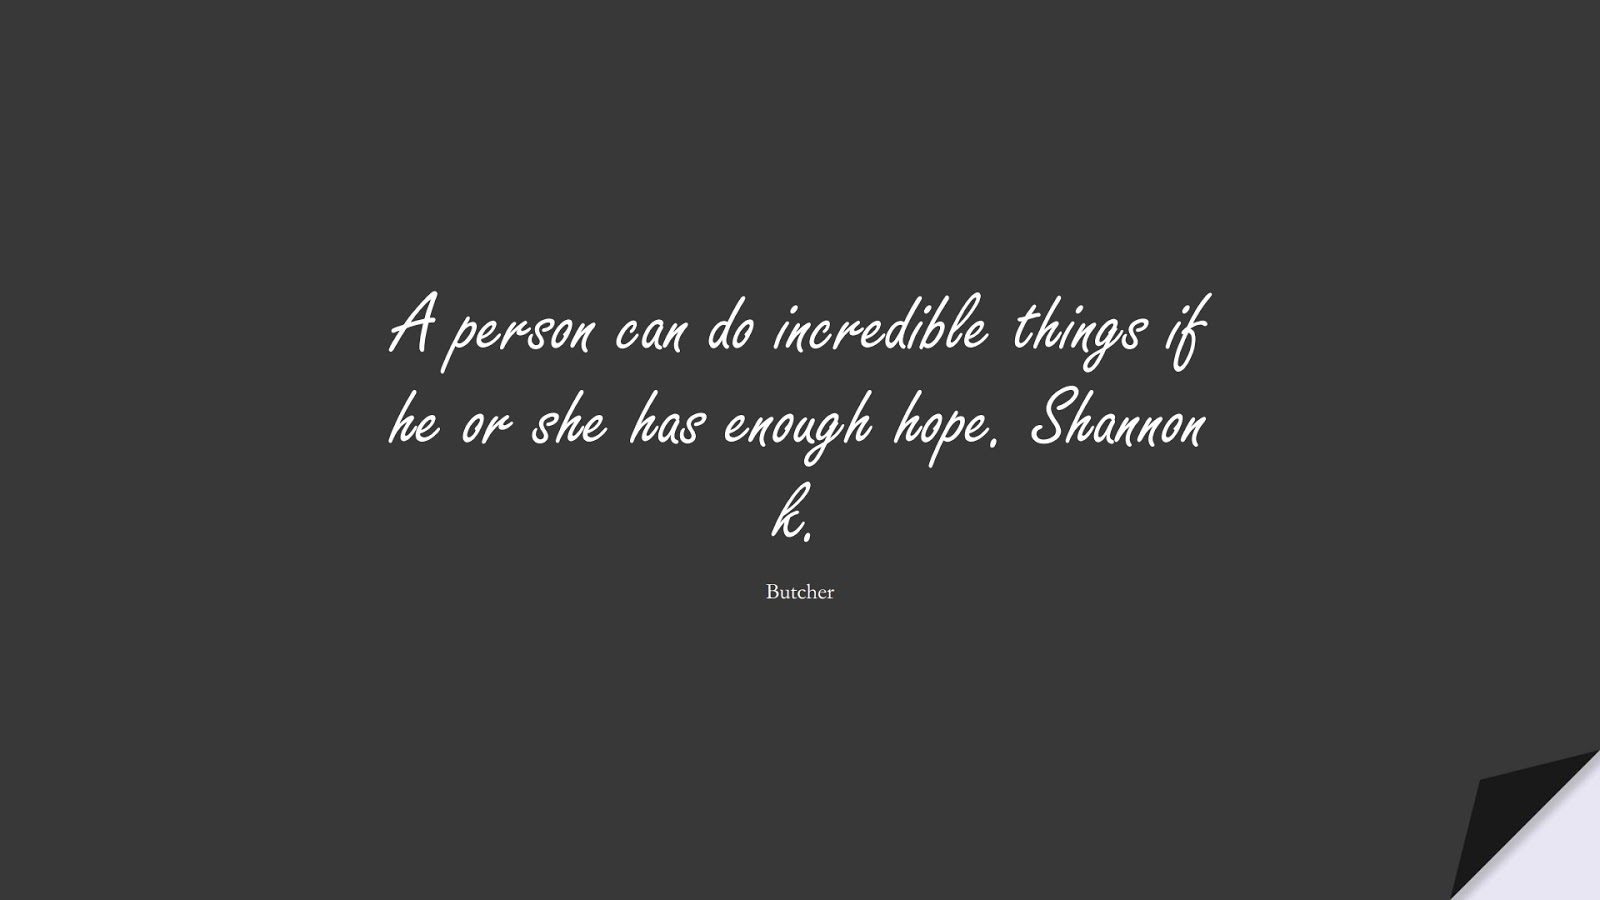 A person can do incredible things if he or she has enough hope. Shannon k. (Butcher);  #HopeQuotes